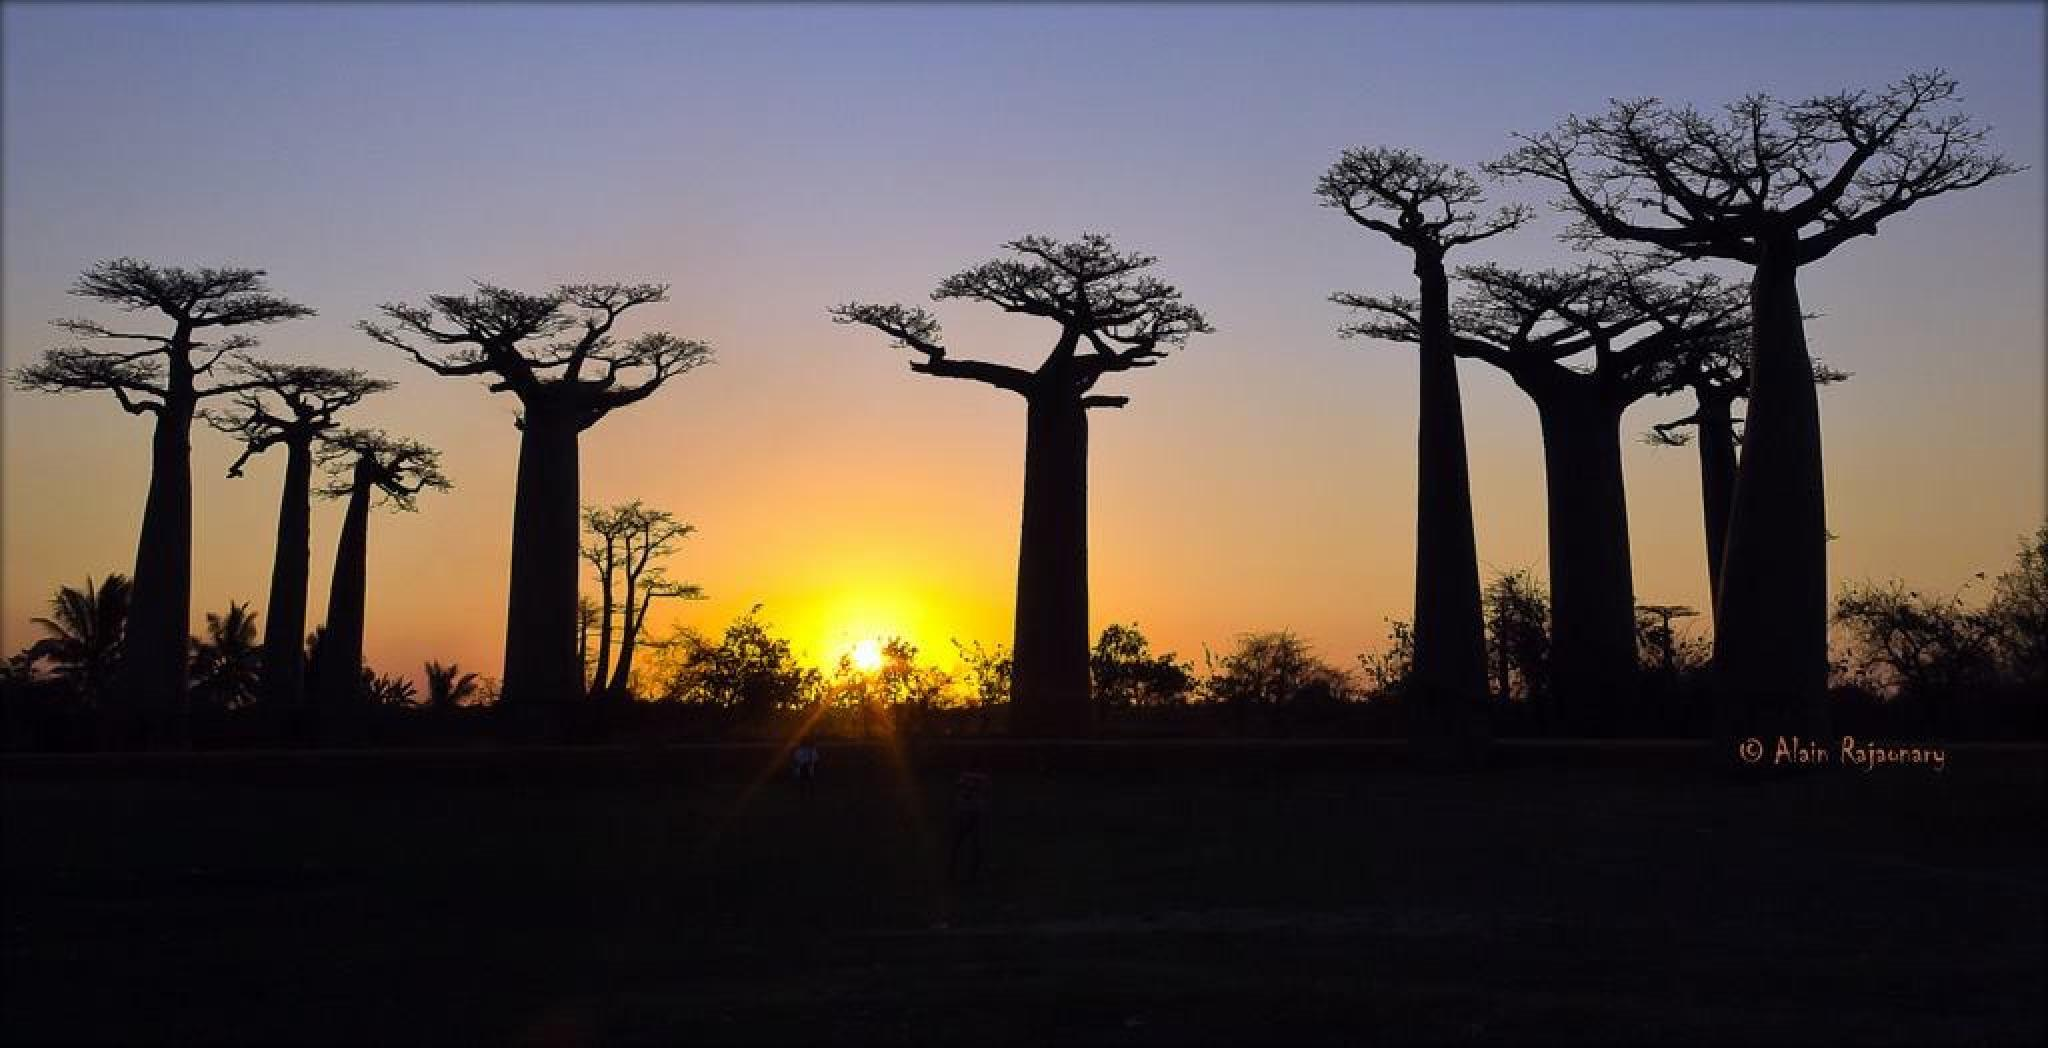 Sunset over baobabs by Rajaonary Alain